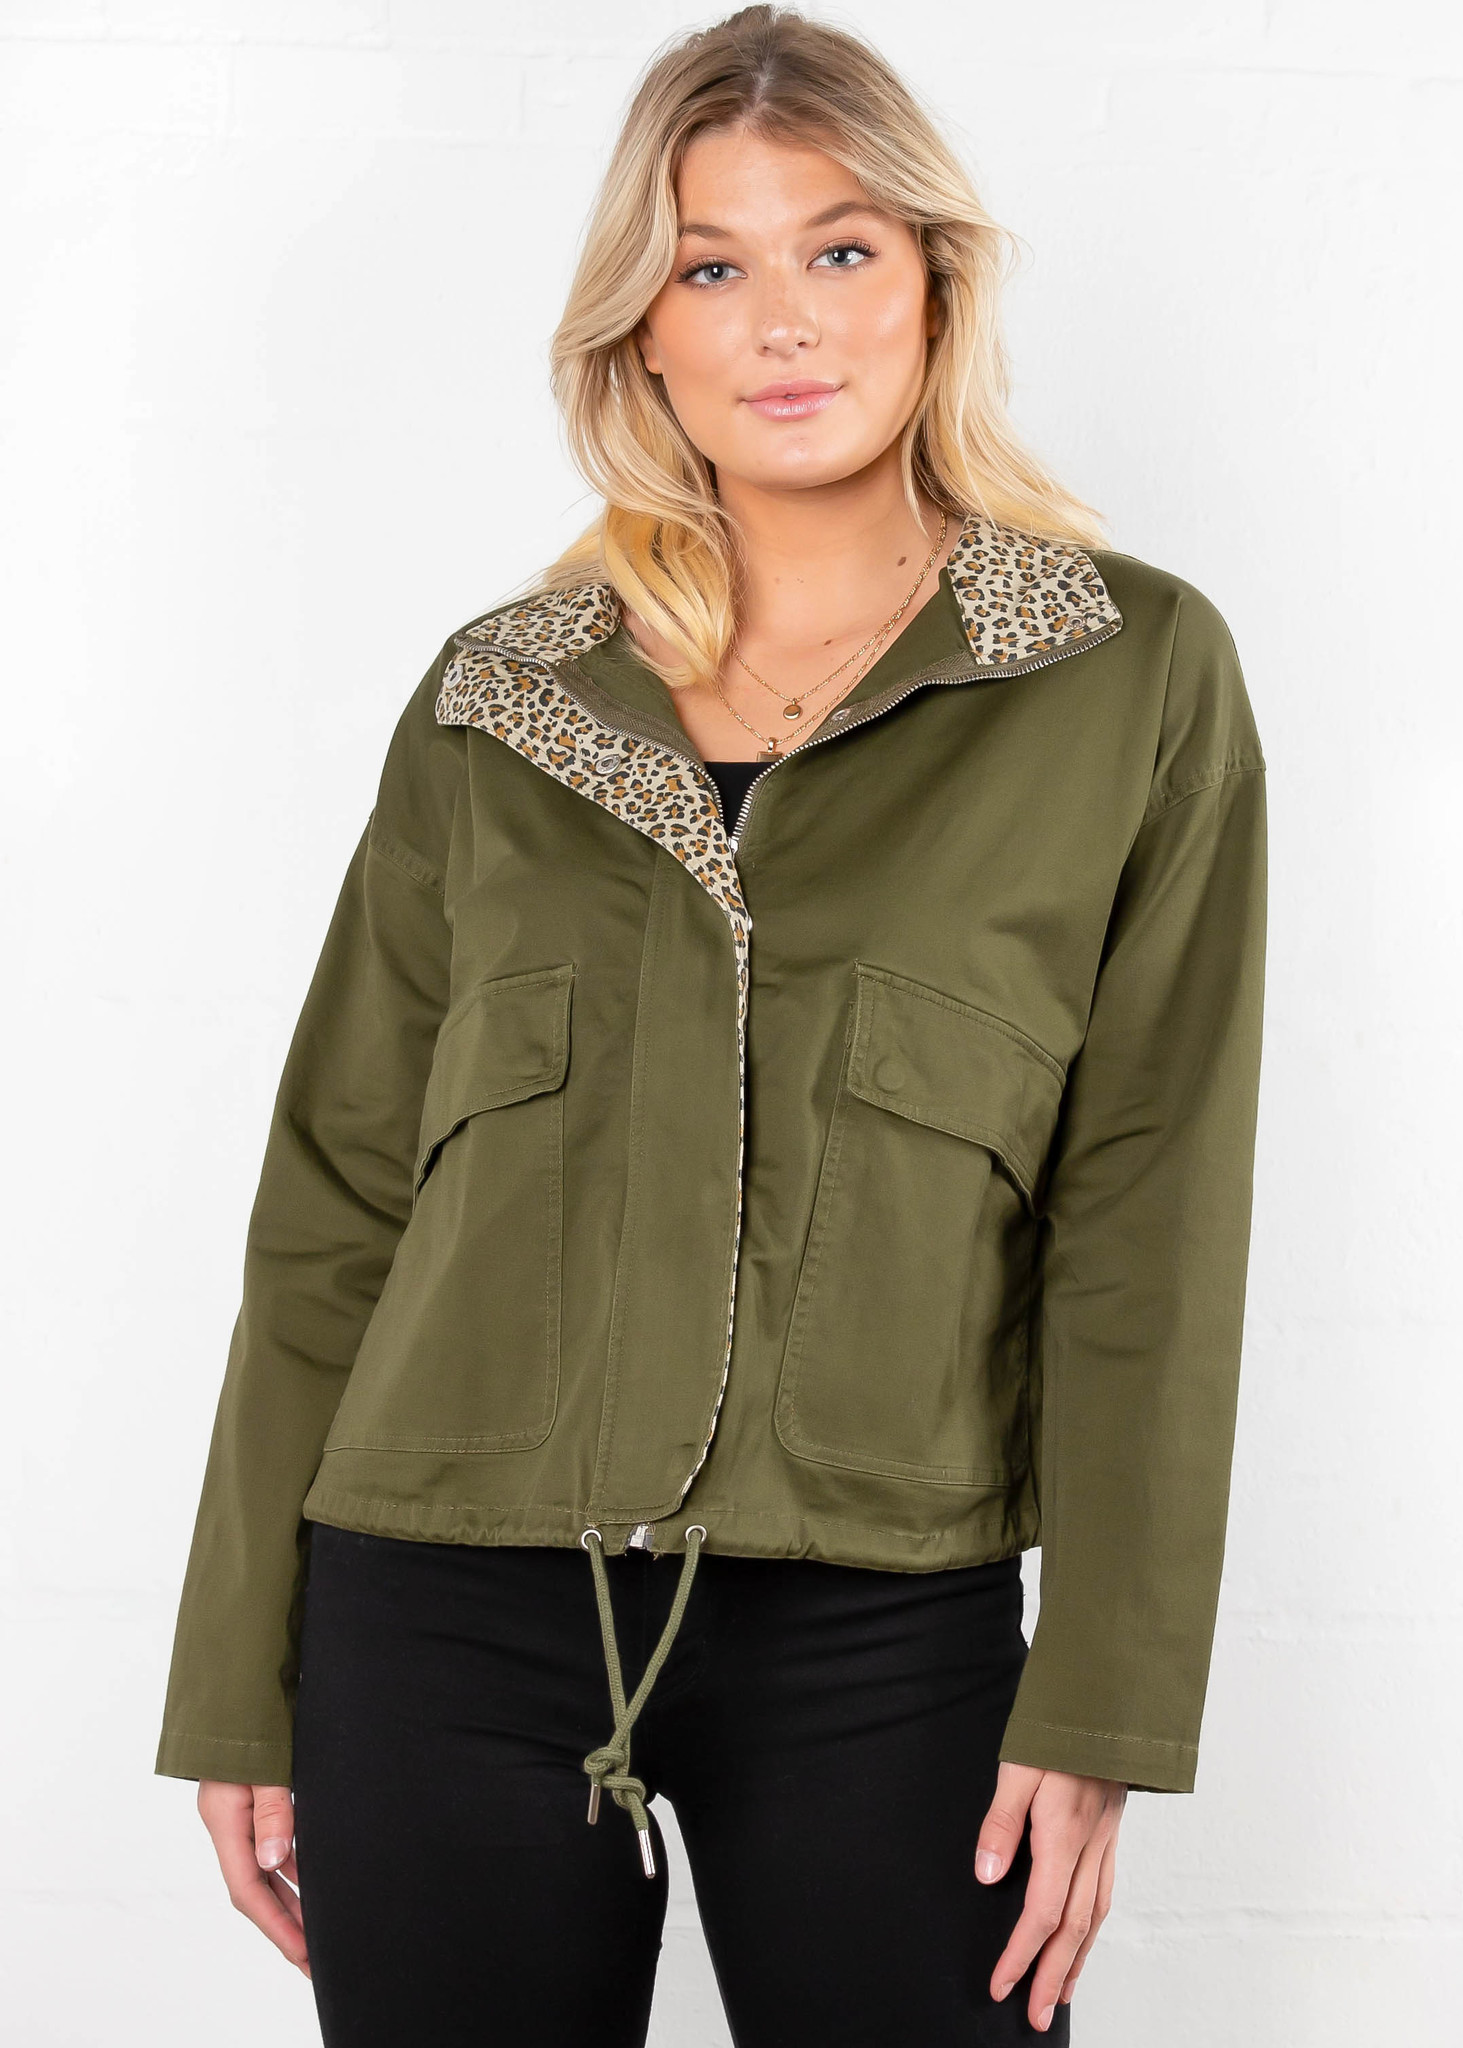 PARK AVENUE CROPPED JACKET